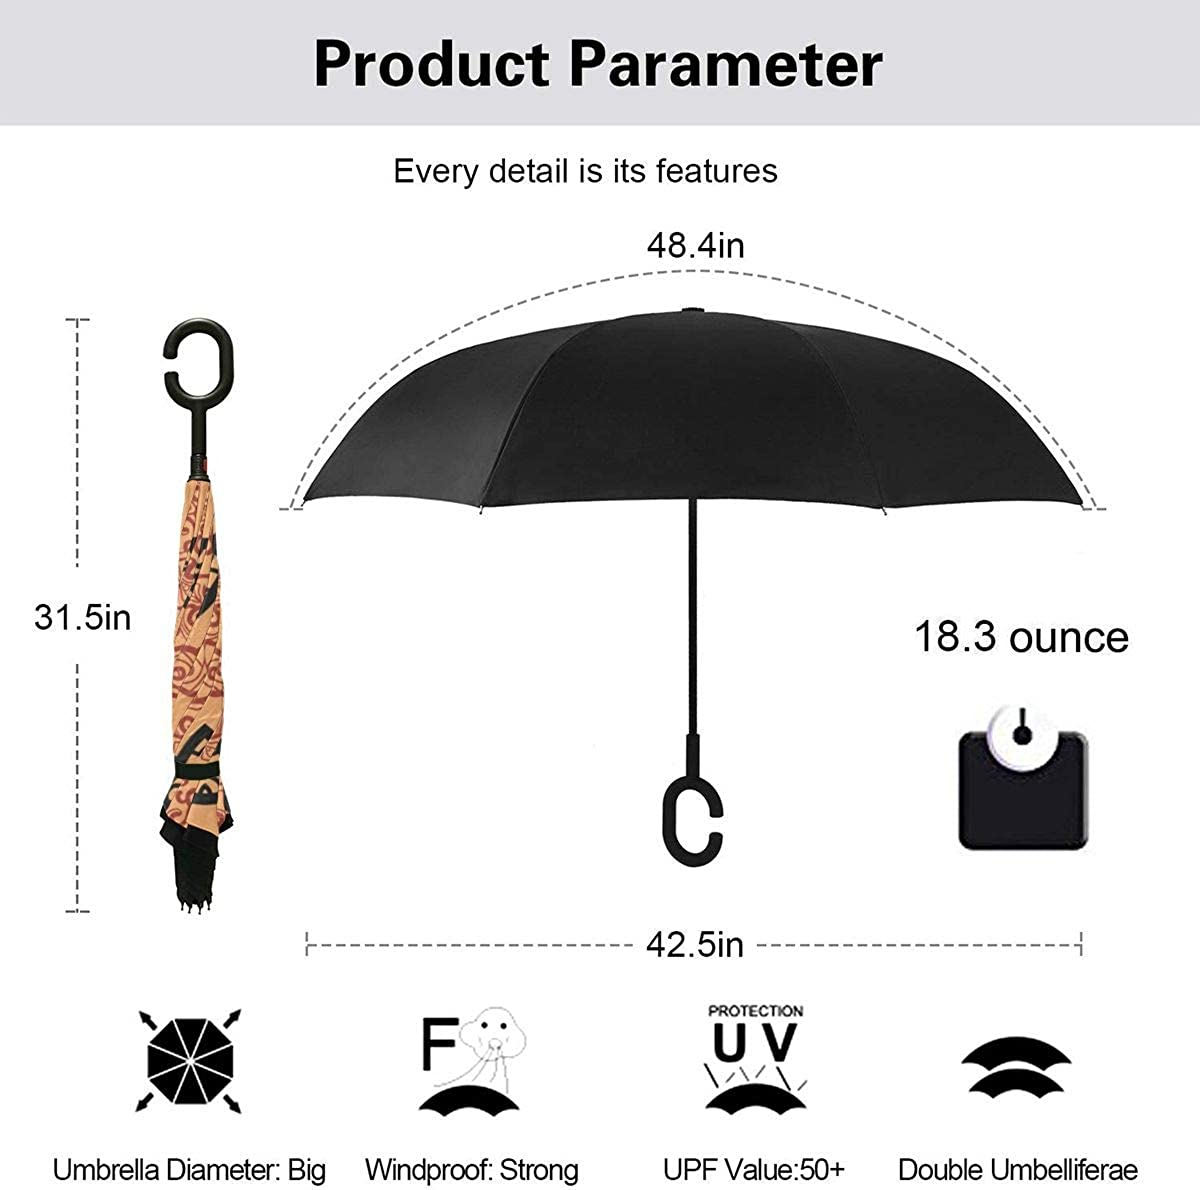 Reverse Umbrella Double Layer Inverted Umbrellas For Car Rain Outdoor With C-Shaped Handle Mandala Card Geometric Circle Element Personalized